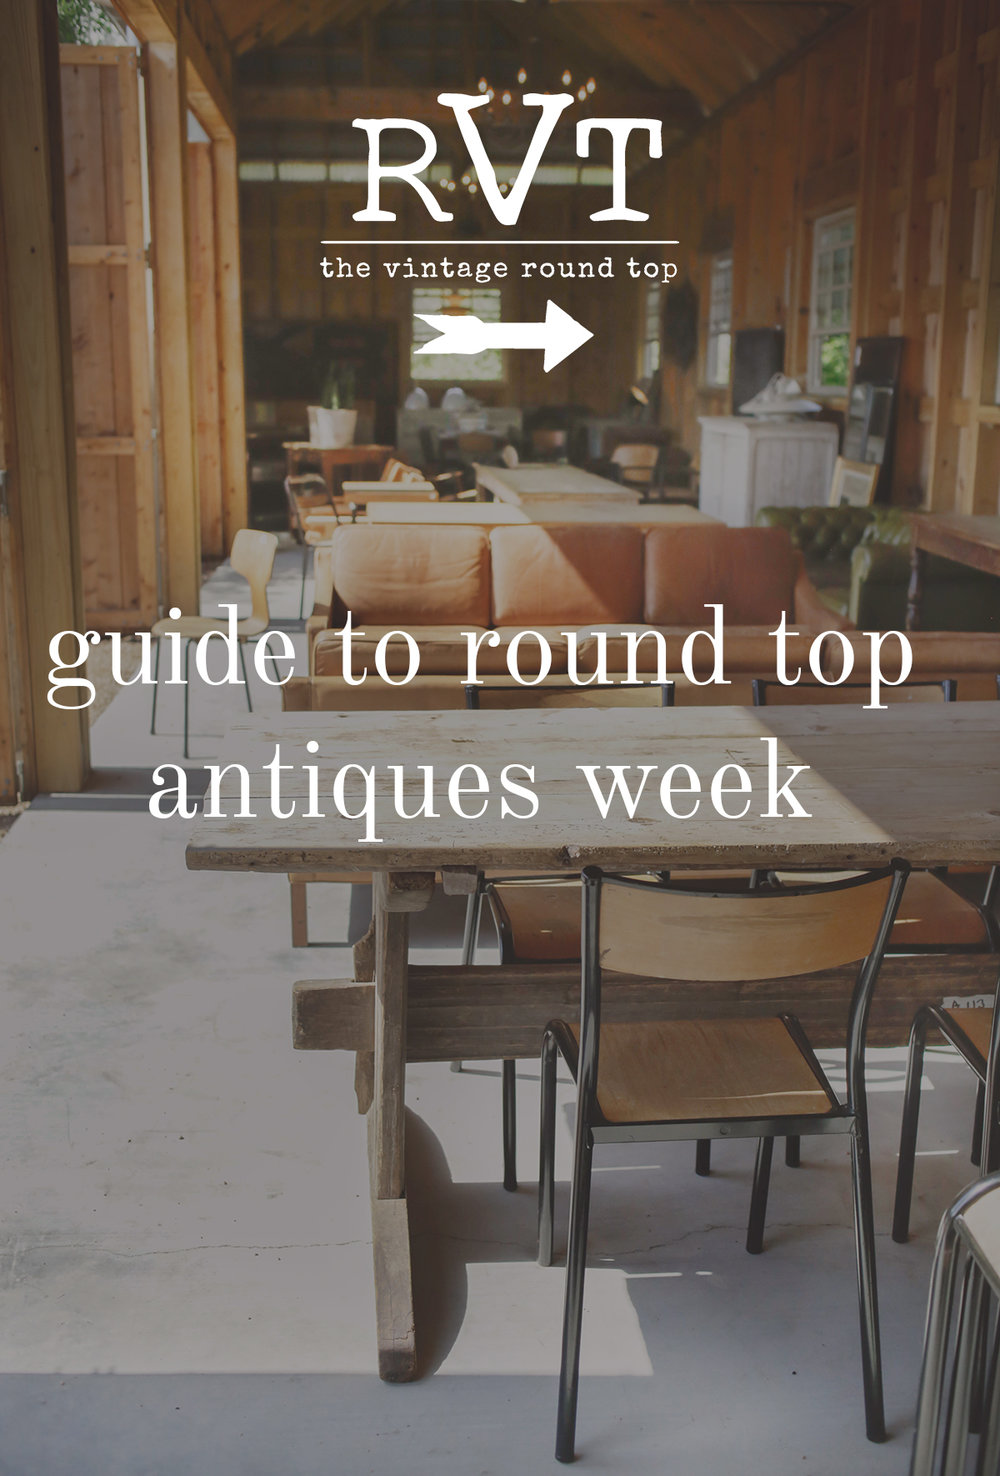 Guide+to+Round+Top+Antiques+Week+%2F+The+Vintage+Round+Top (2).jpeg